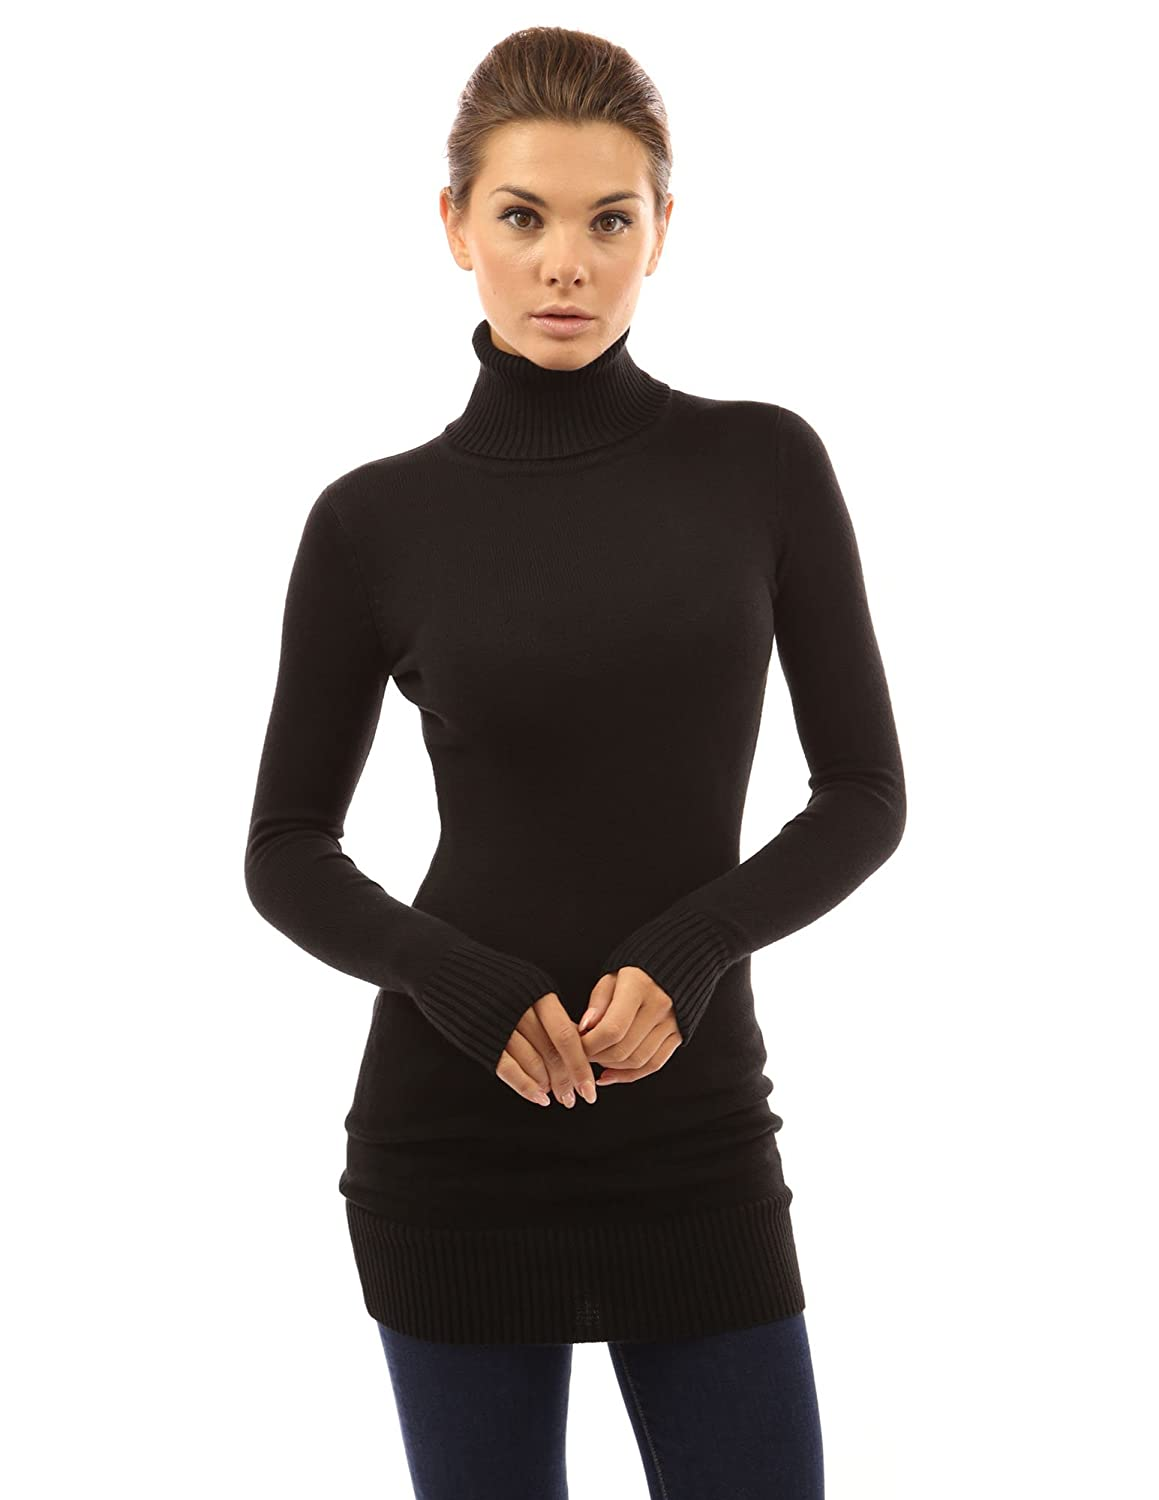 PattyBoutik Women's Turtleneck Long Sleeve Sweater at Amazon ...